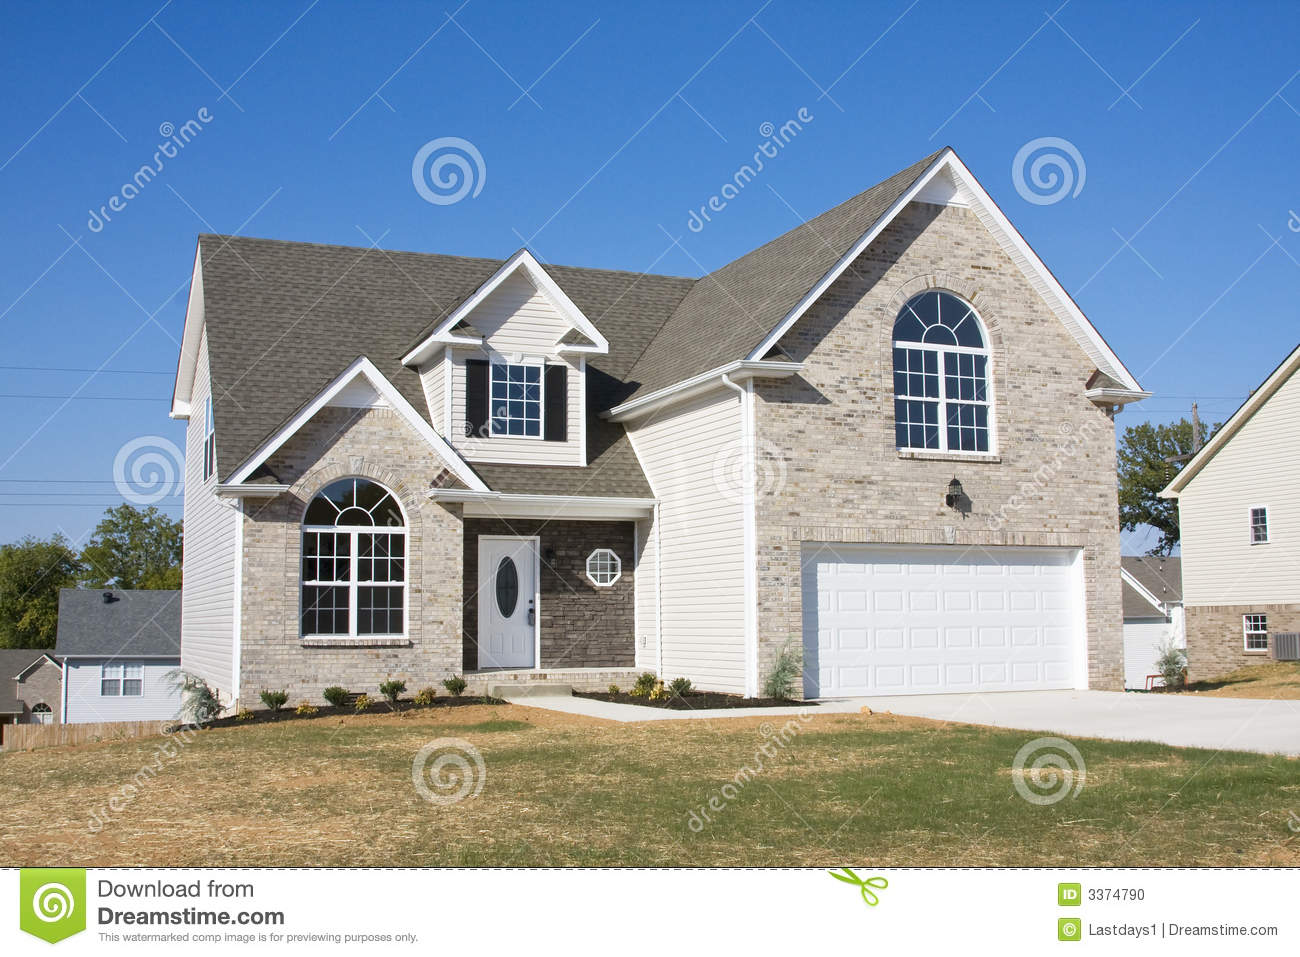 New homes for sale stock photo image 3374790 for Houses for sale with pictures